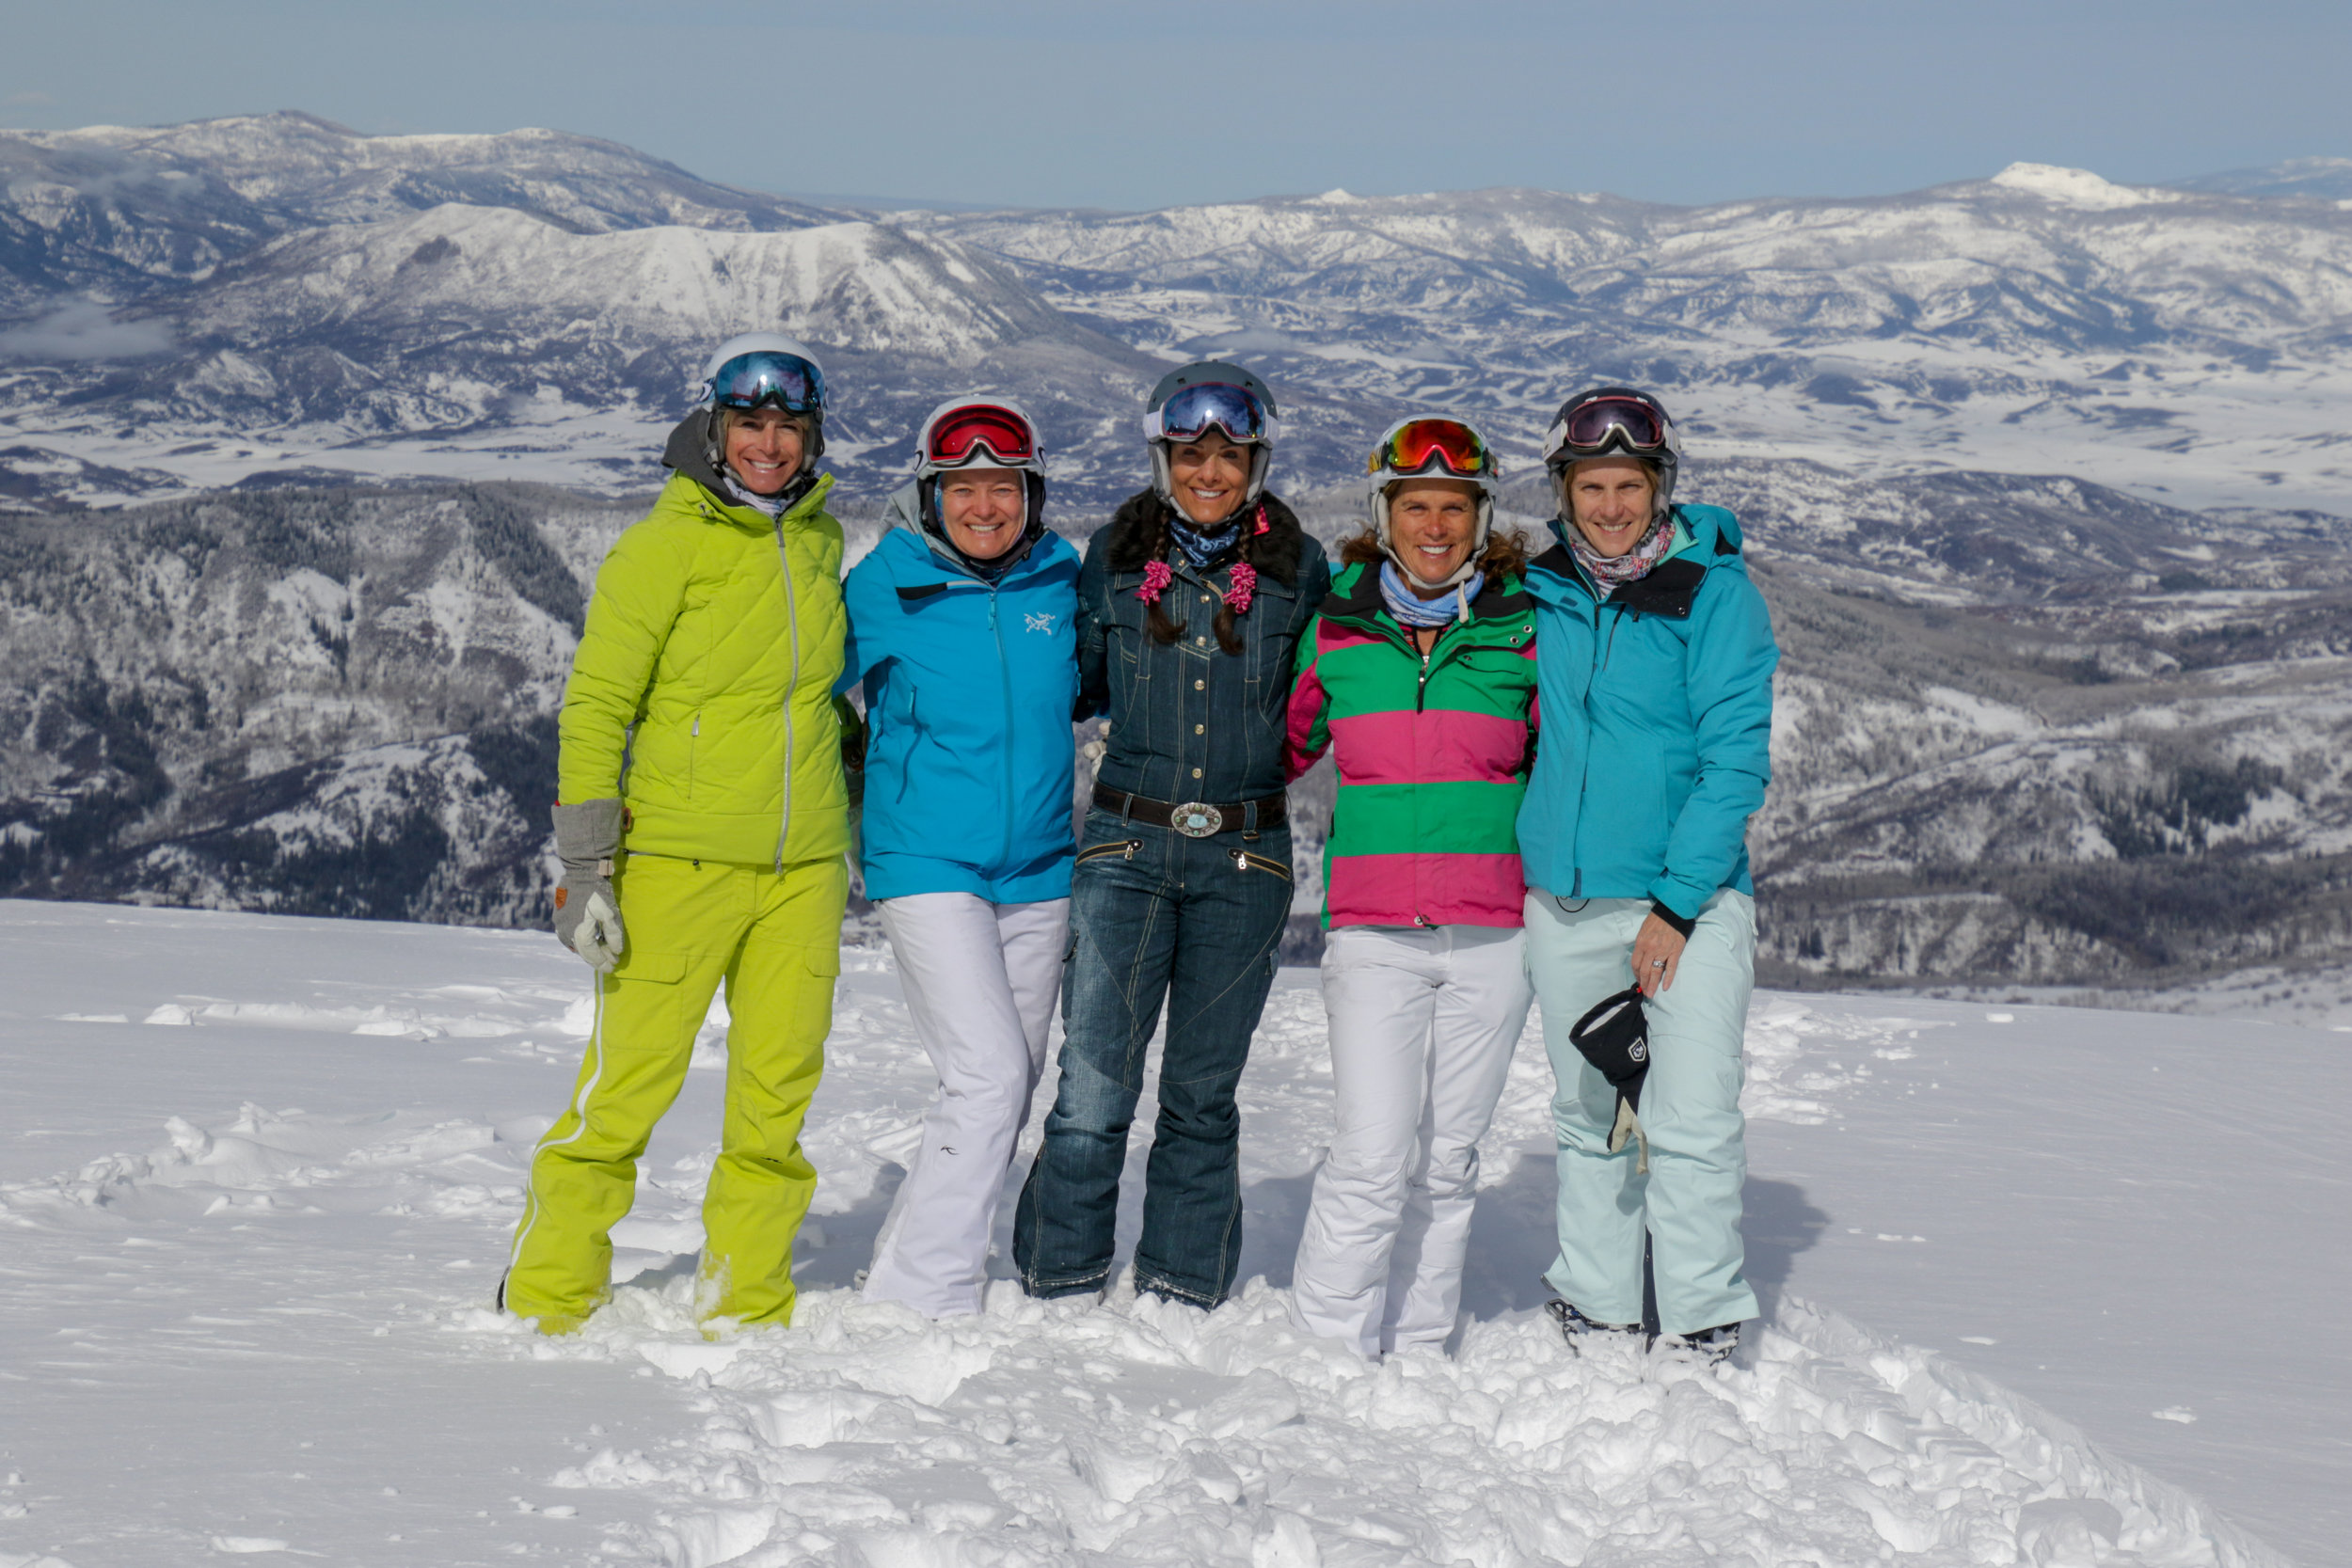 Lisa and friends celebrating her 60th B-day in Steamboat.